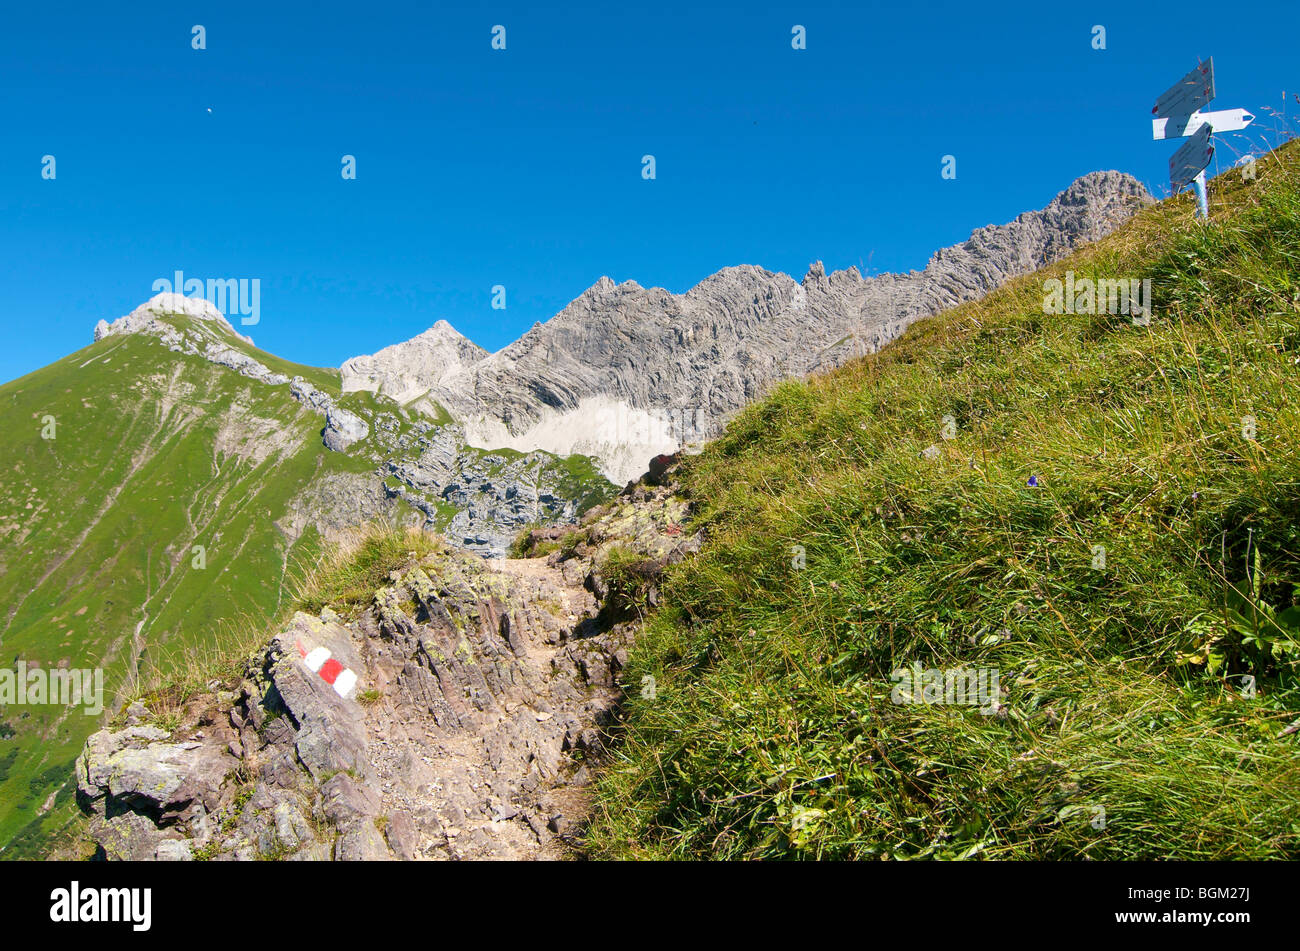 Path leading to the Prinz-Luitpold-House, Hintersteiner Valley, Bad Hindelang, Allgaeu, Bavaria, Germany, Europe Stock Photo